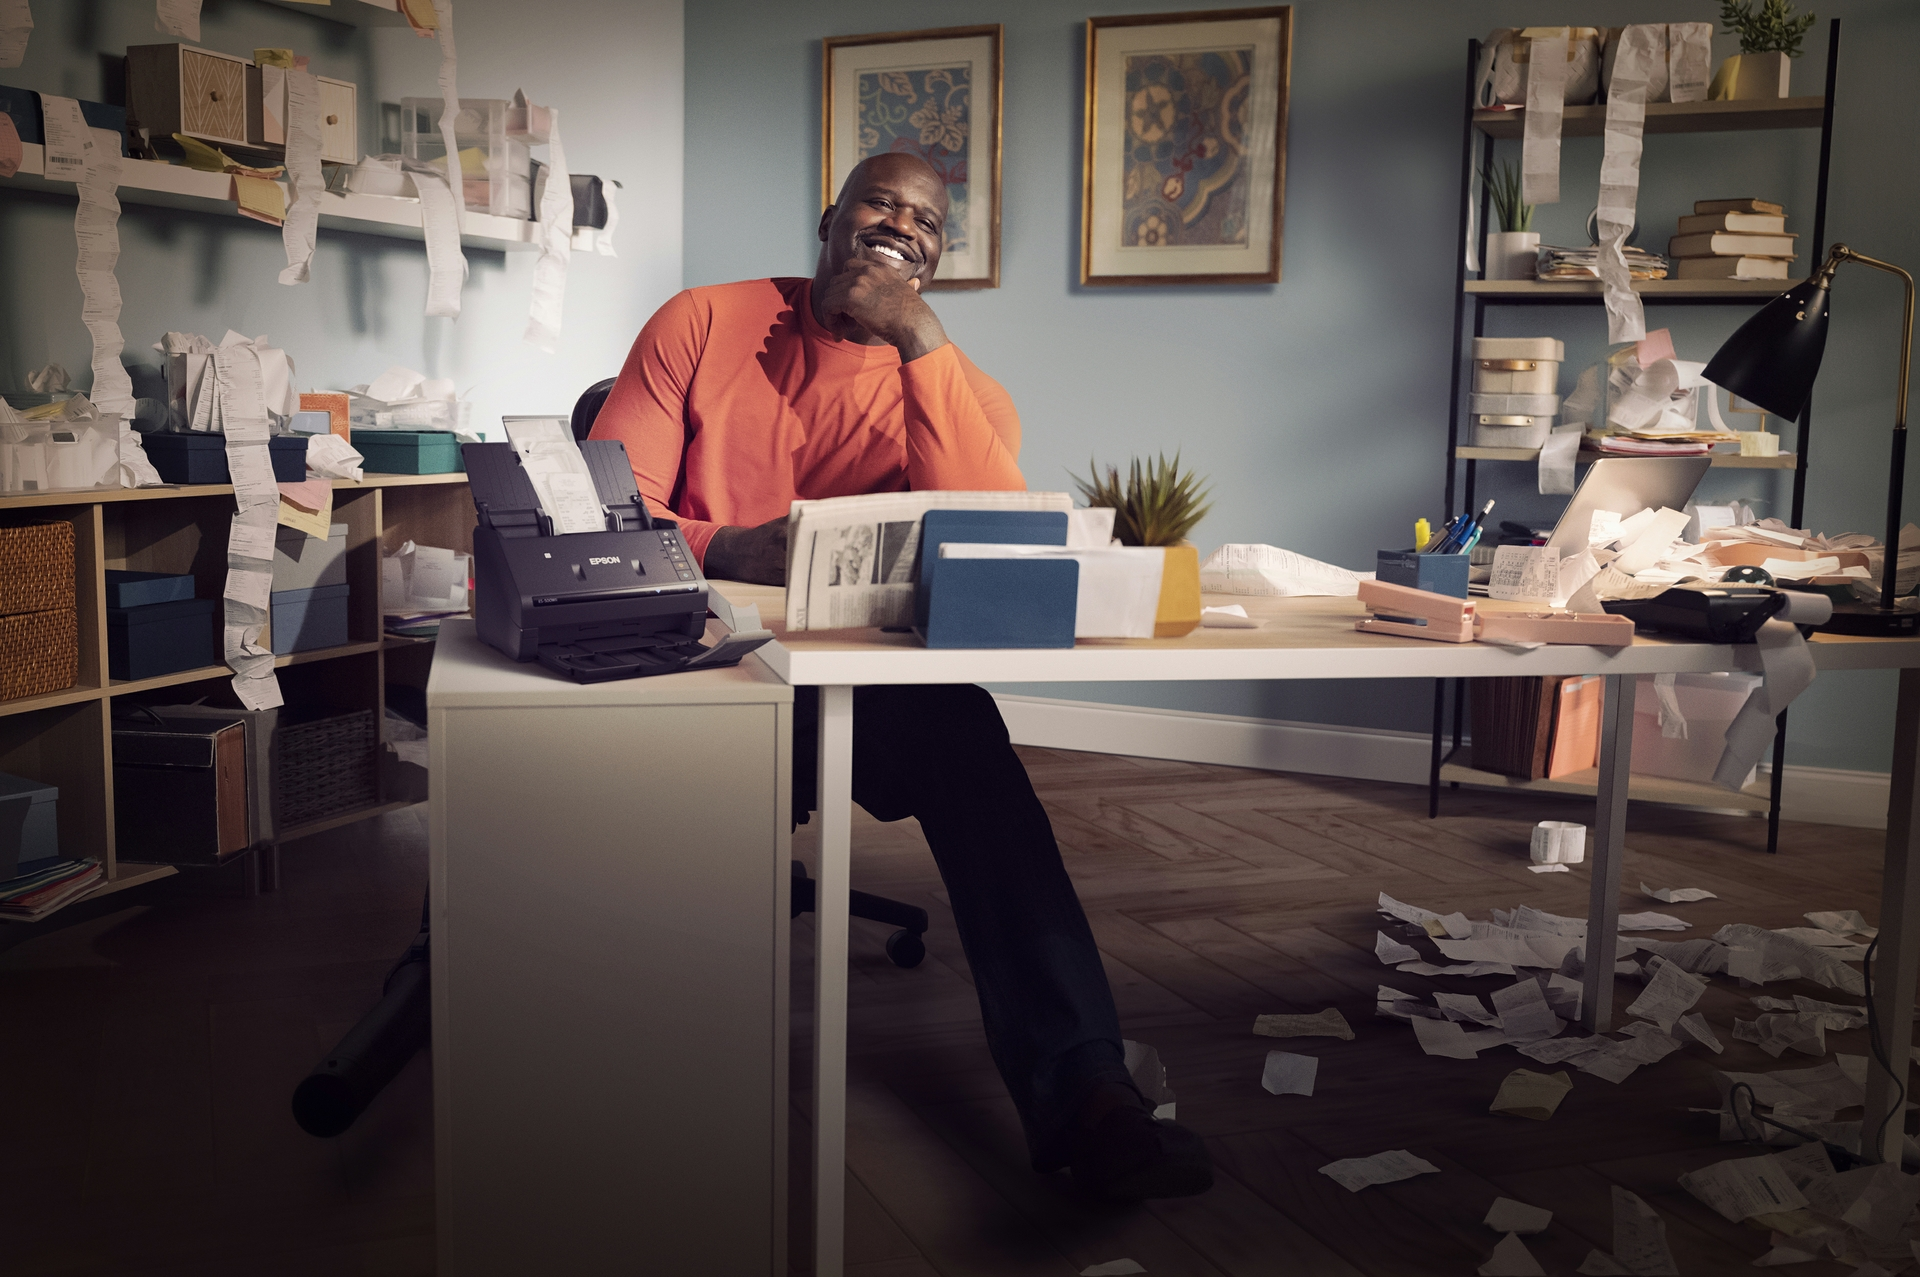 Shaq and Epson Tax Time Image 5